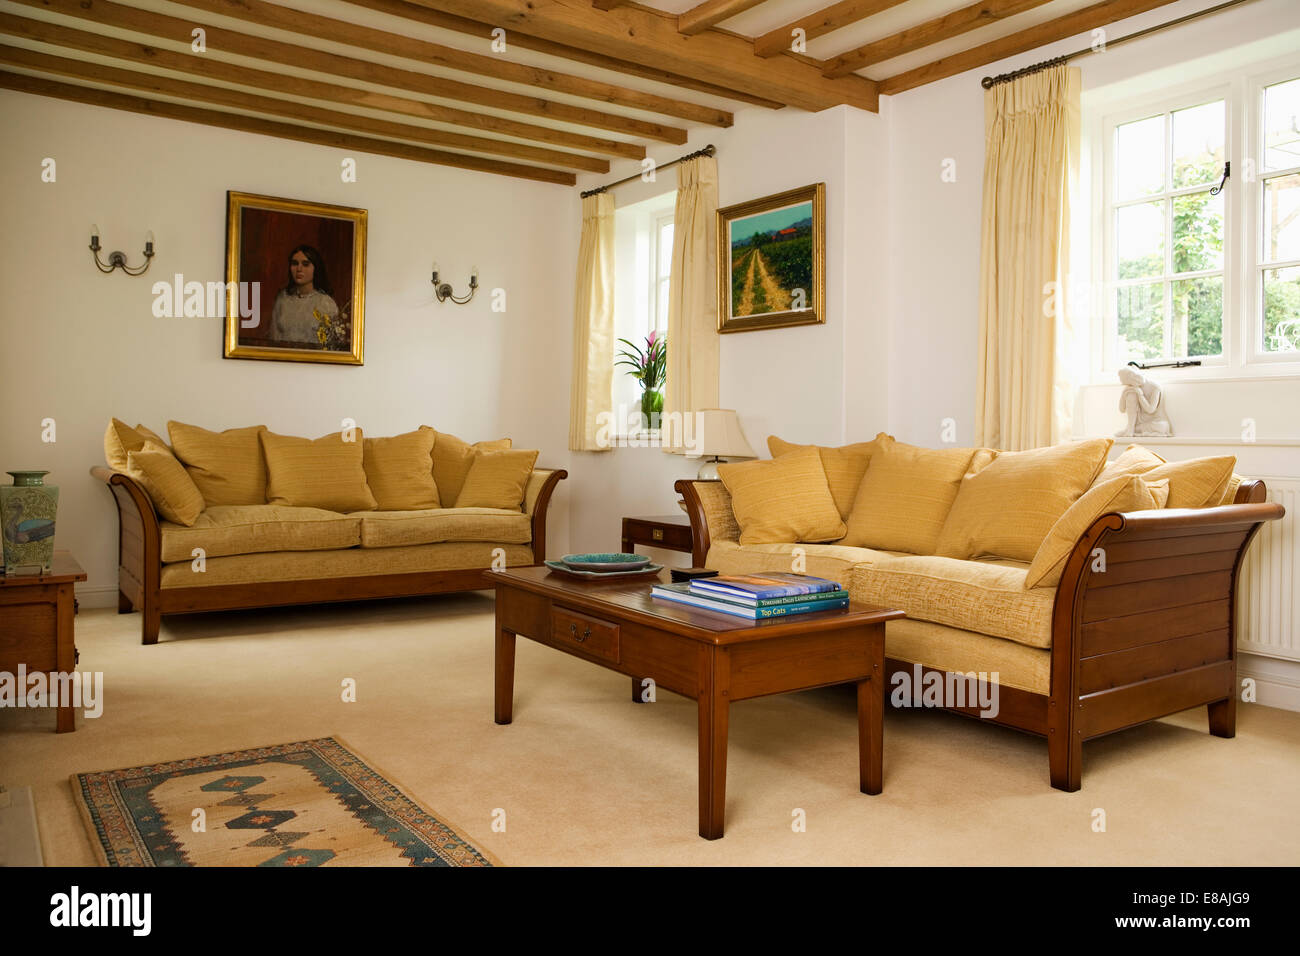 Ochre Yellow Cushions On Mahogany Framed Sofas In Cream Country Living Room  With Beamed Ceiling And Cream Carpet Part 64